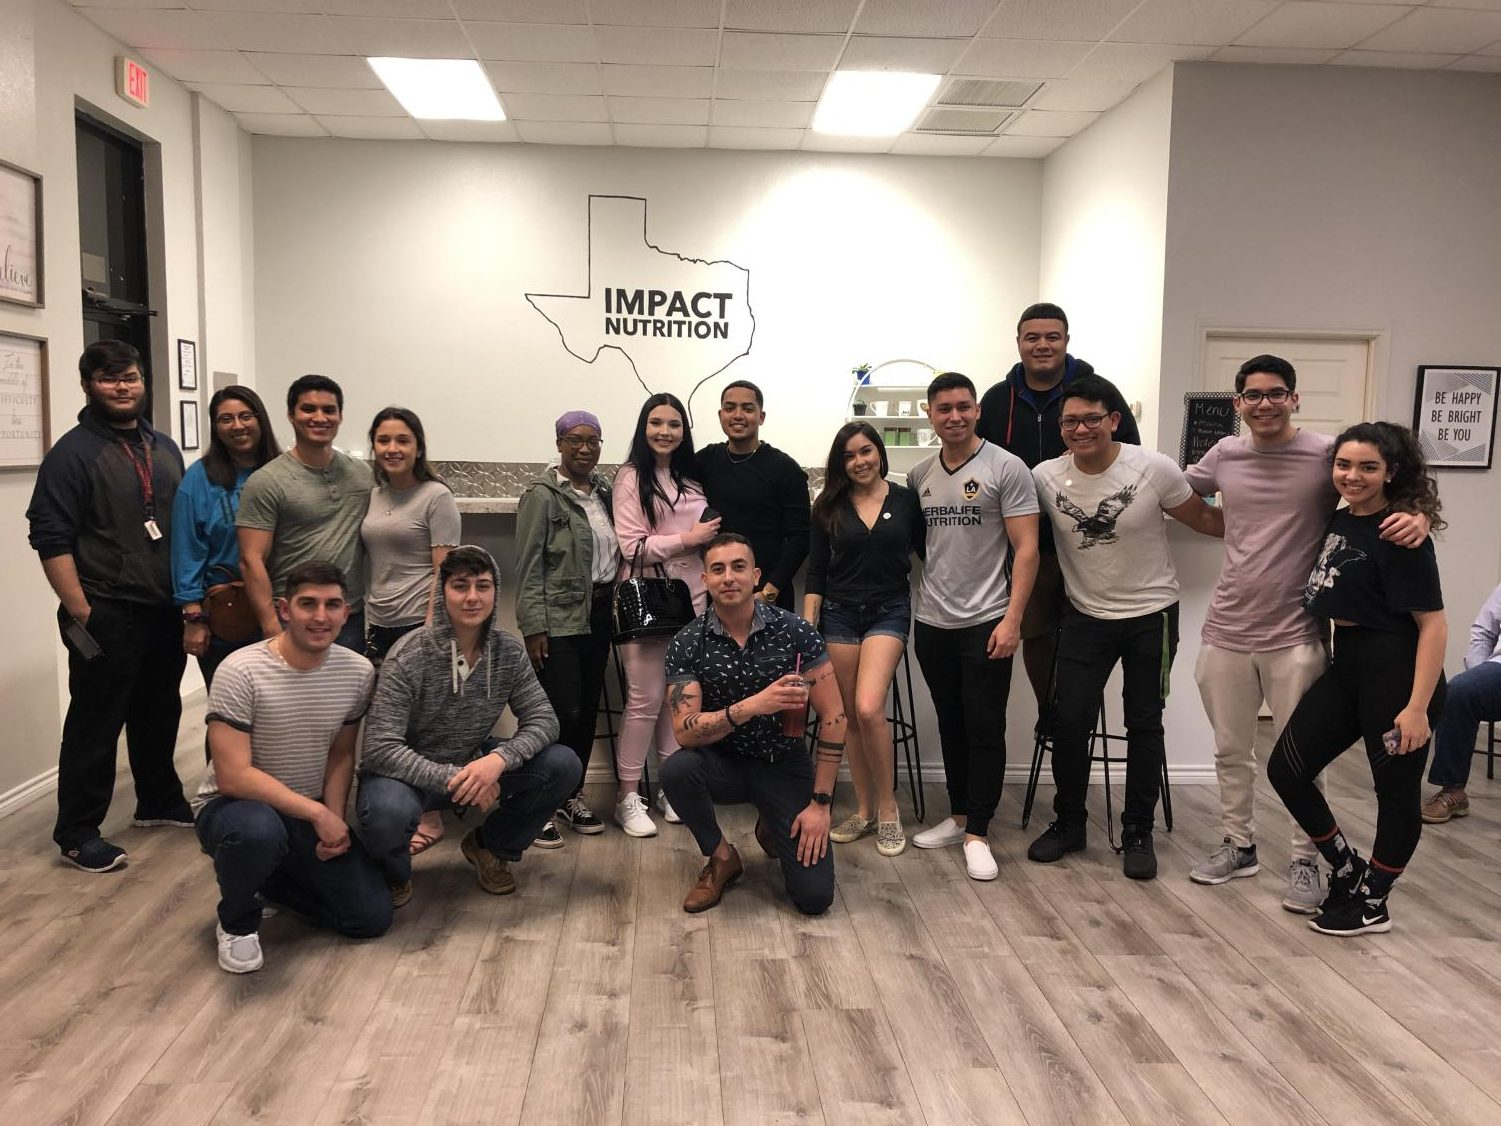 Image courtesy of Lino Diaz Islanders Isaac Neyra and Michael Villarreal performed at Impact Nutrition's first